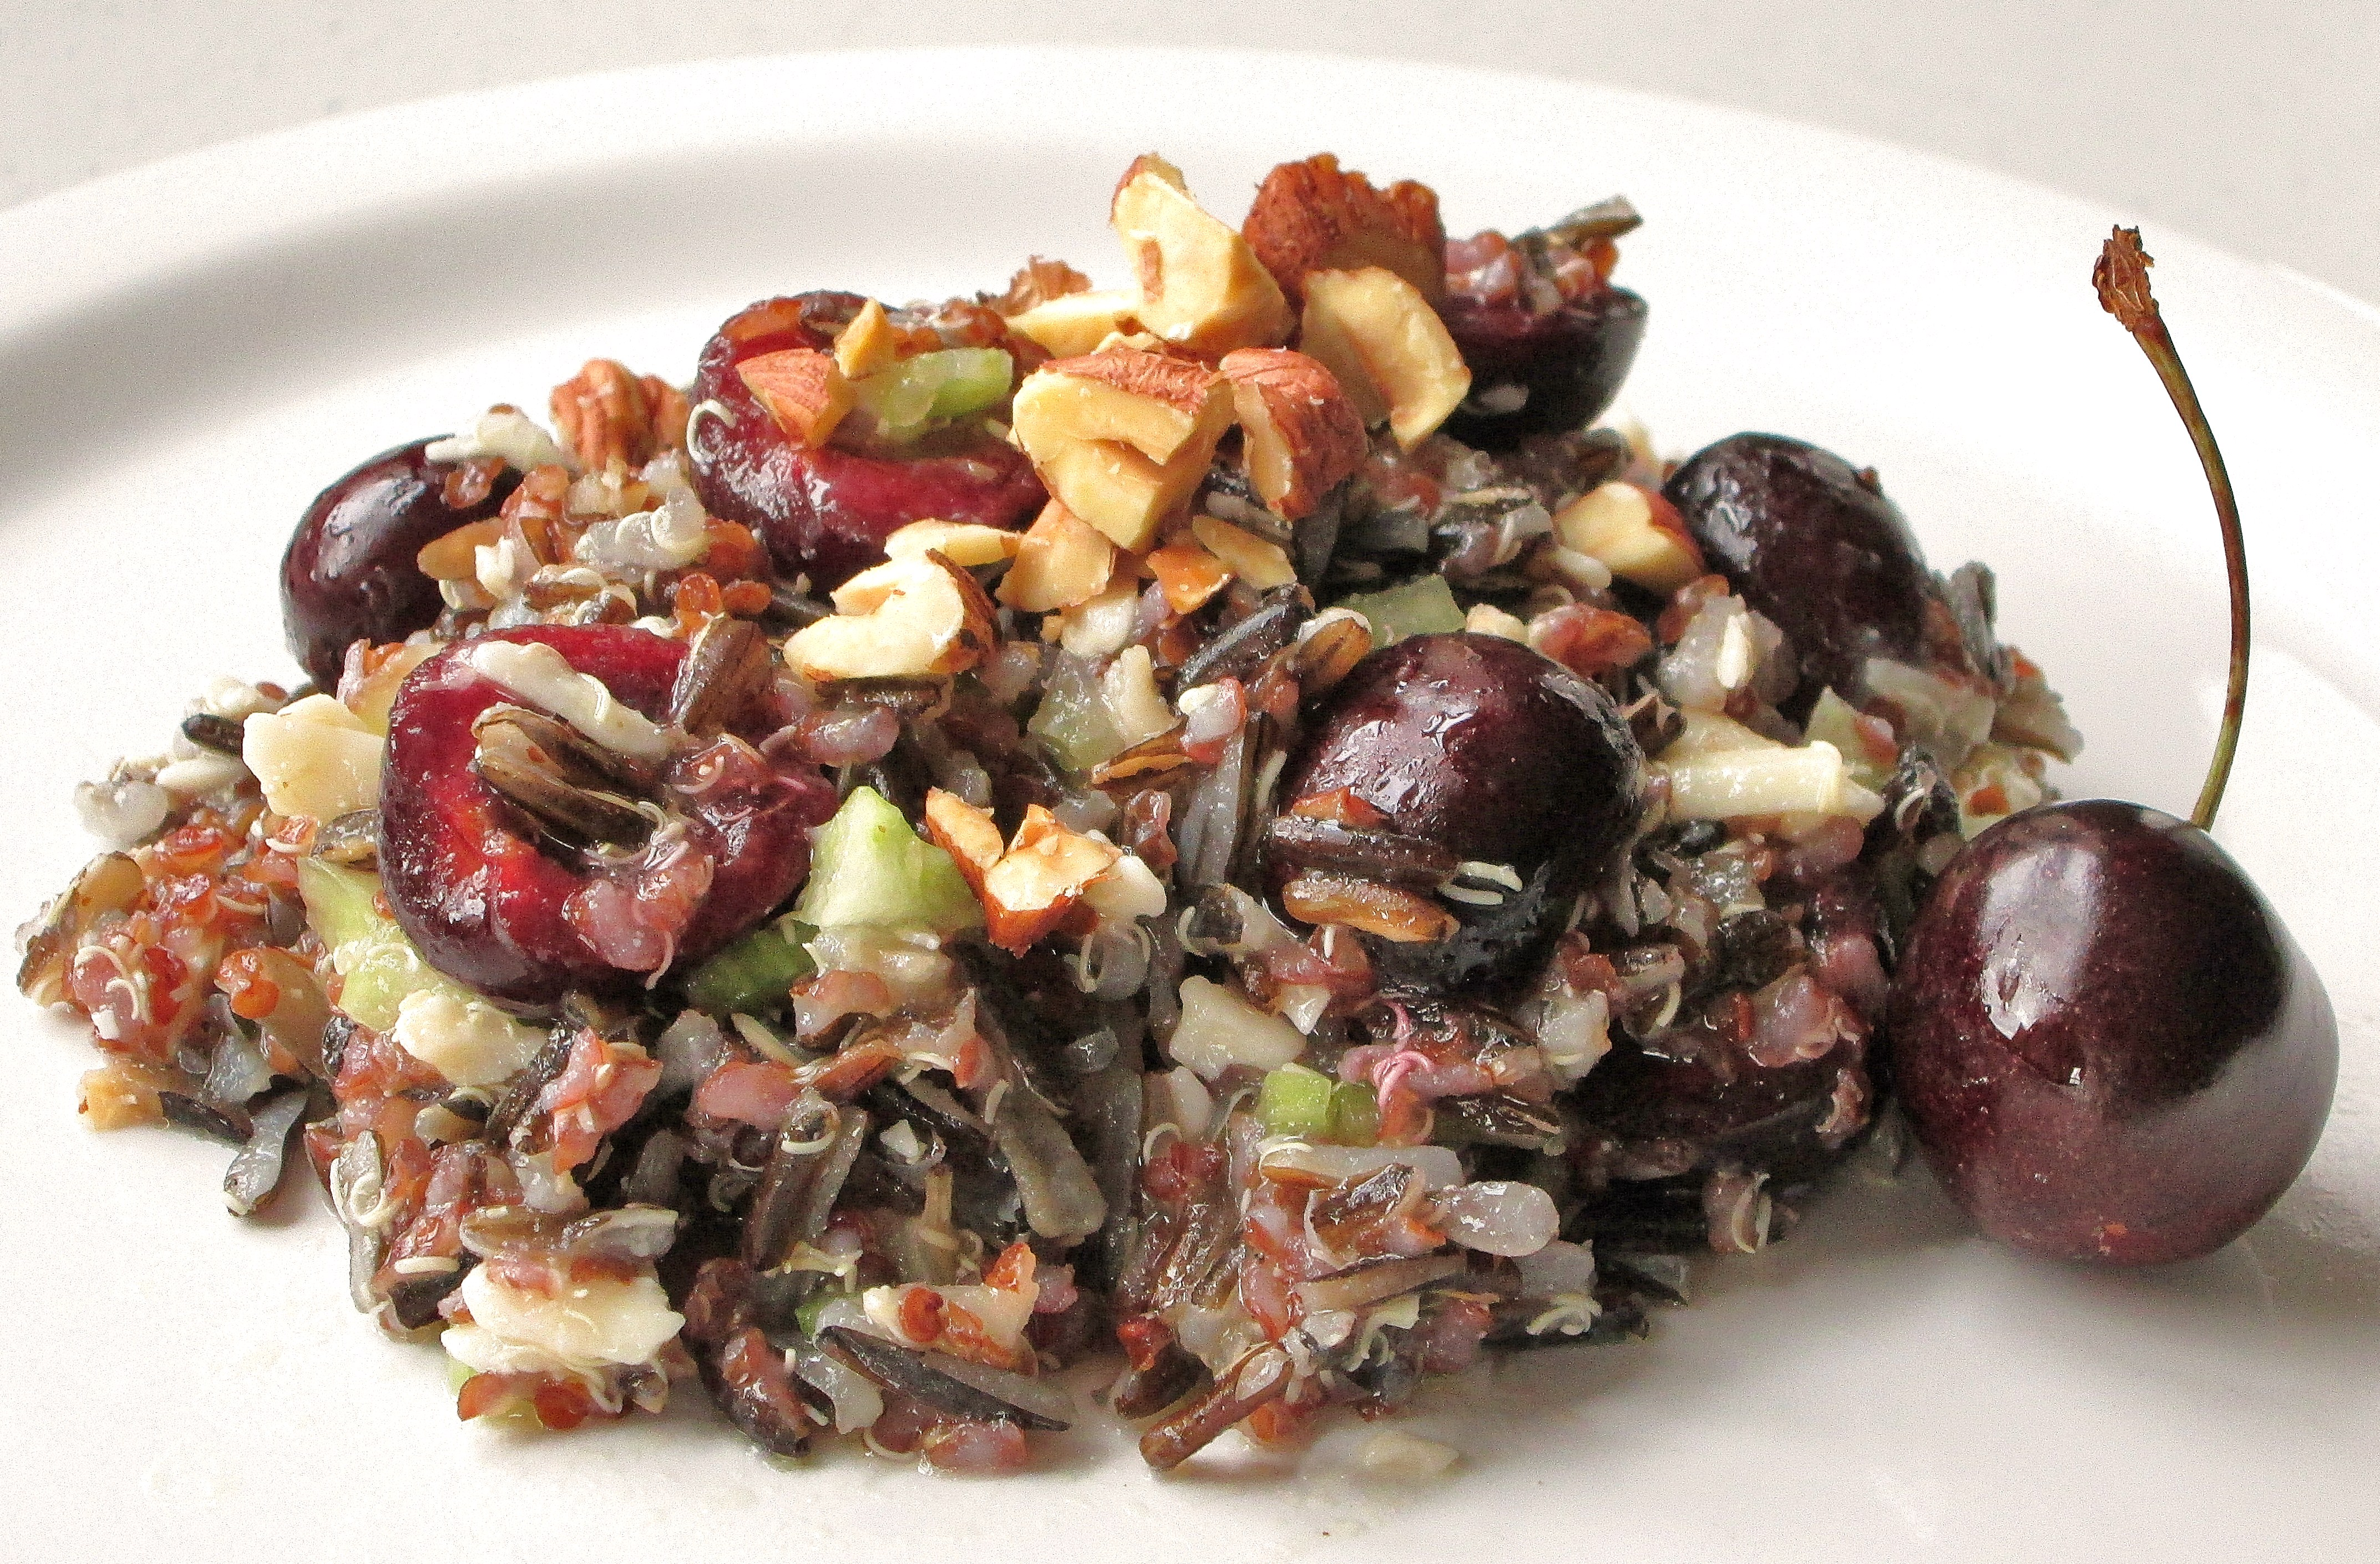 Cherry, Wild Rice, And Quinoa Salad © 2013 Sassy Sampler